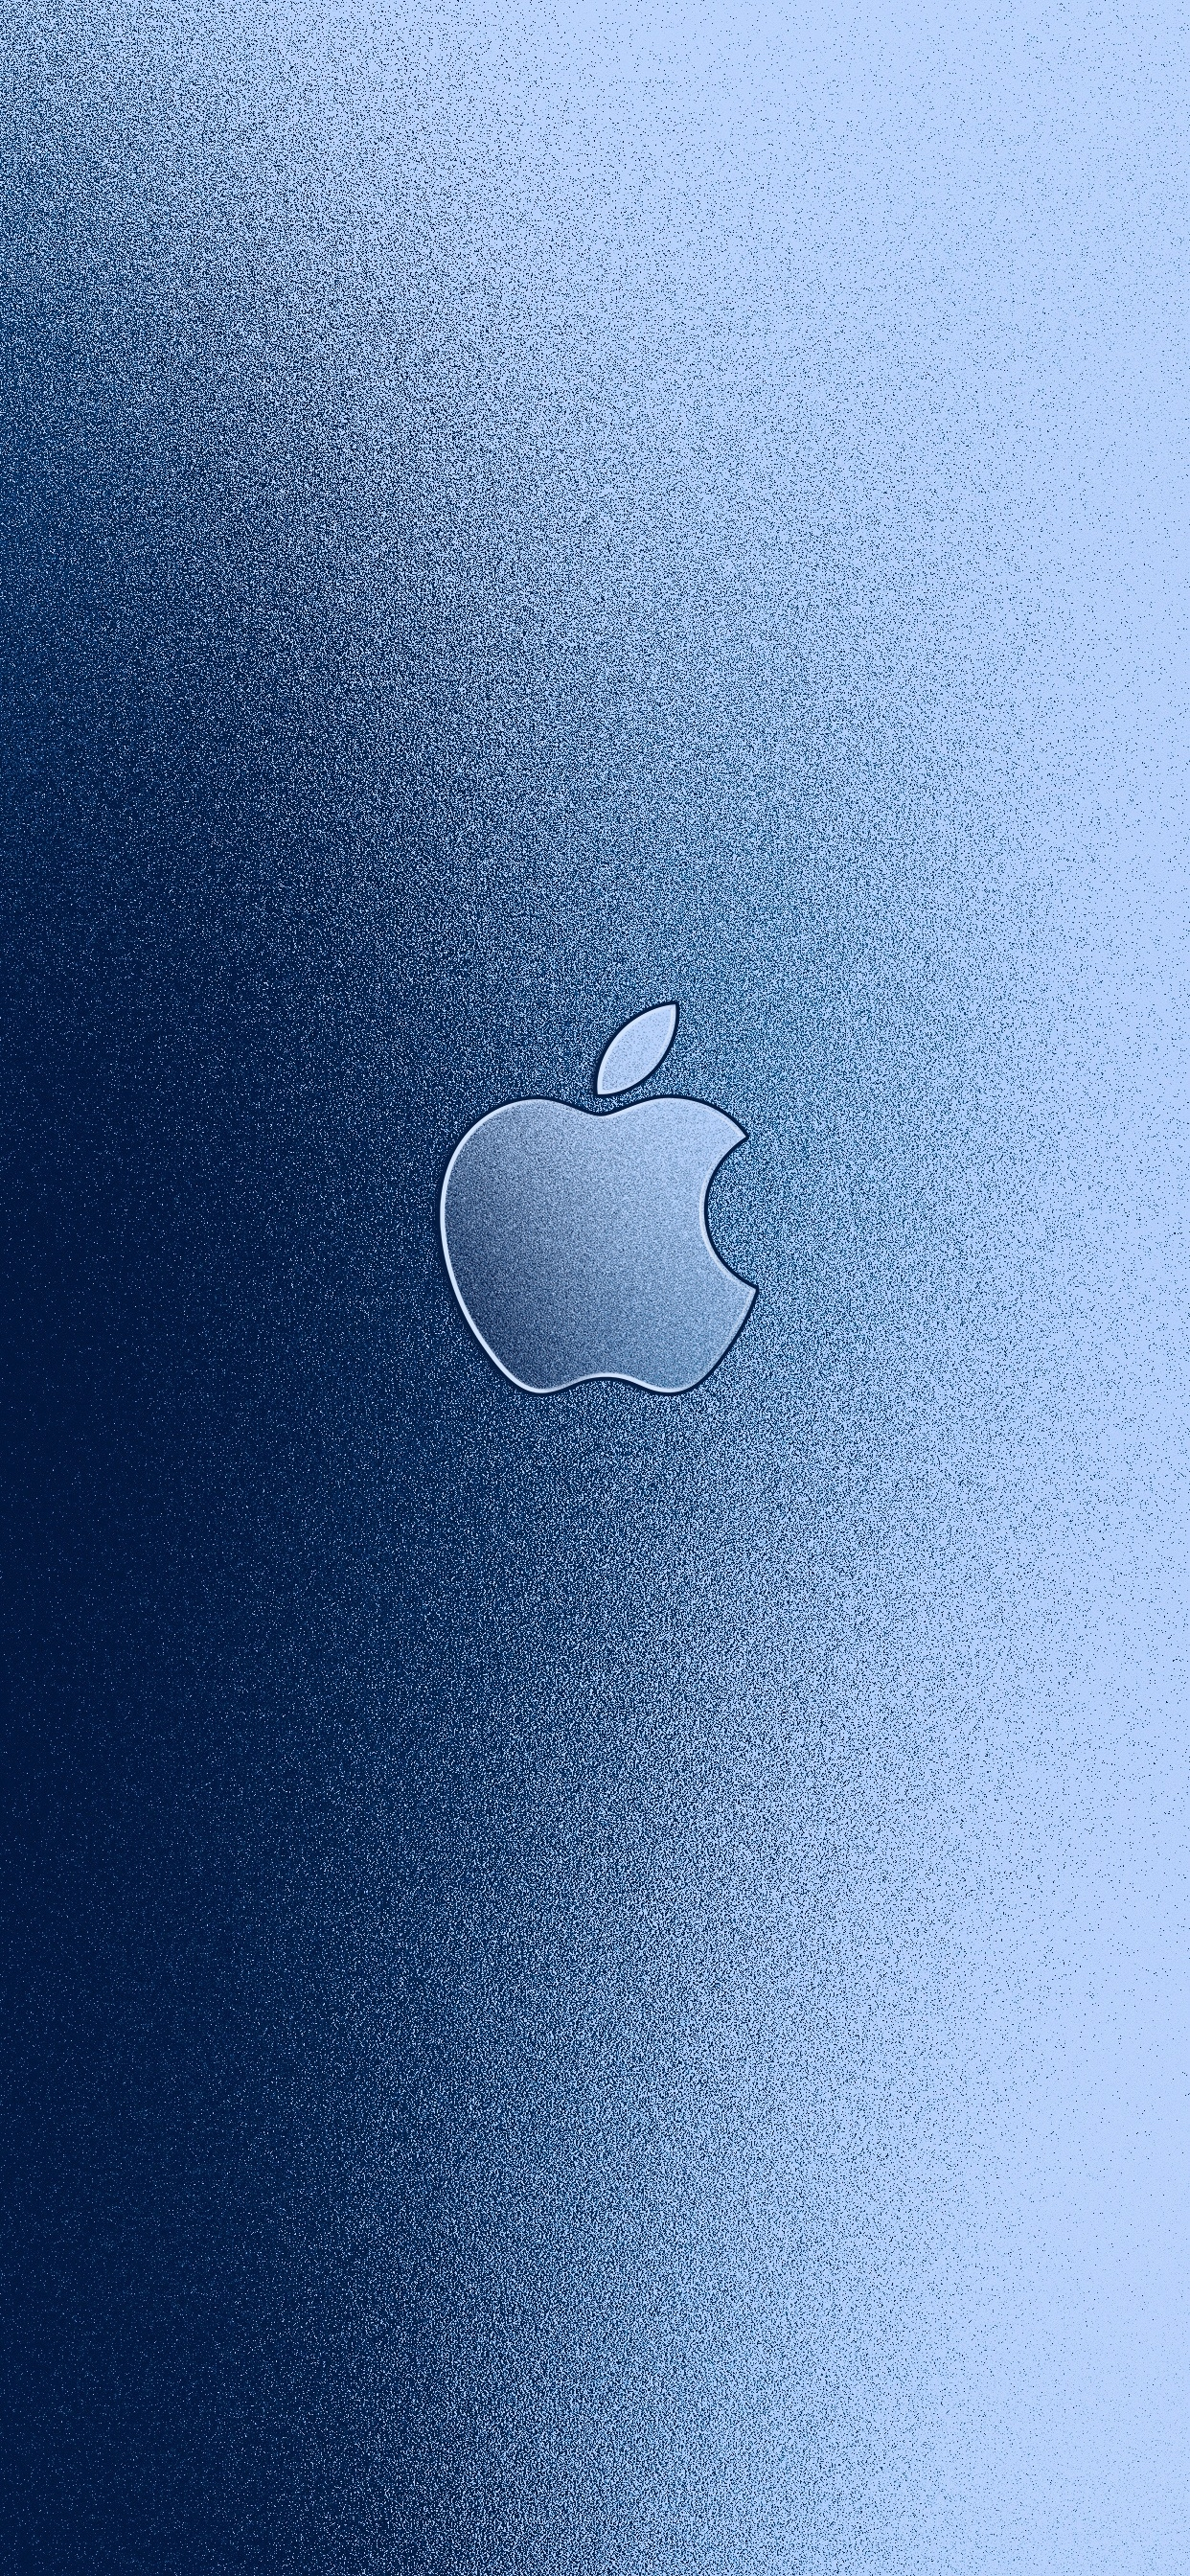 v1 with Apple Logo iPhone XS Max wallpaper ar72014